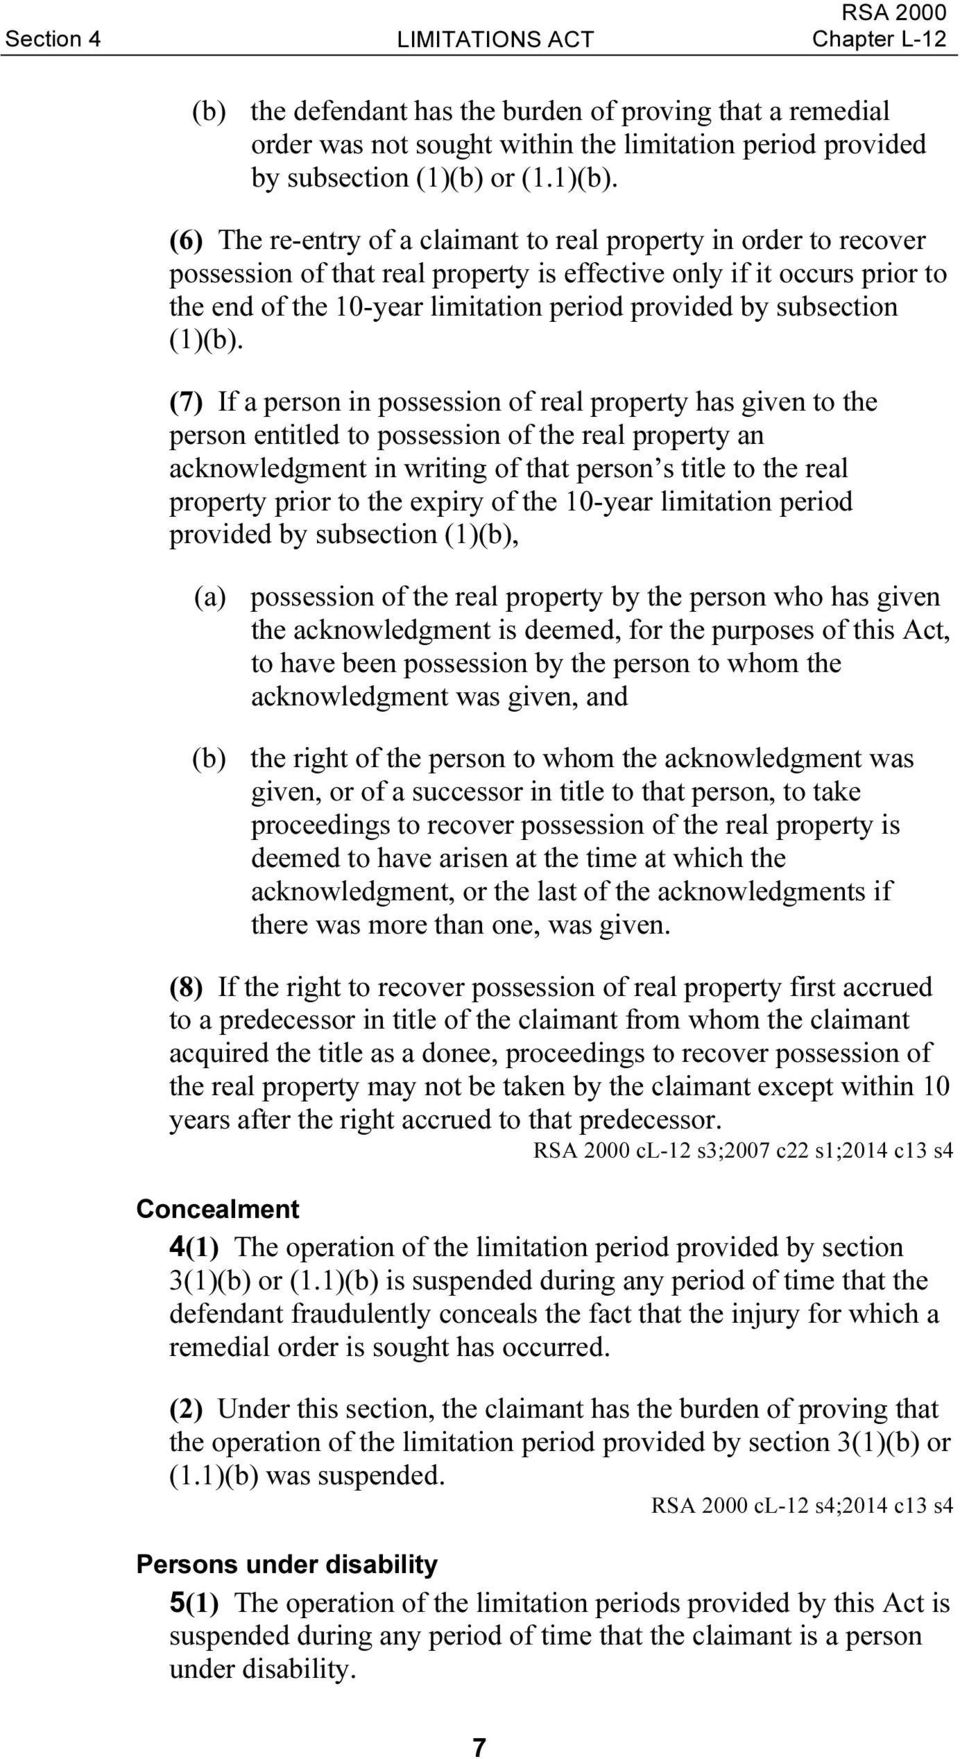 (6) The re-entry of a claimant to real property in order to recover possession of that real property is effective only if it occurs prior to the end of the 10-year limitation period provided by